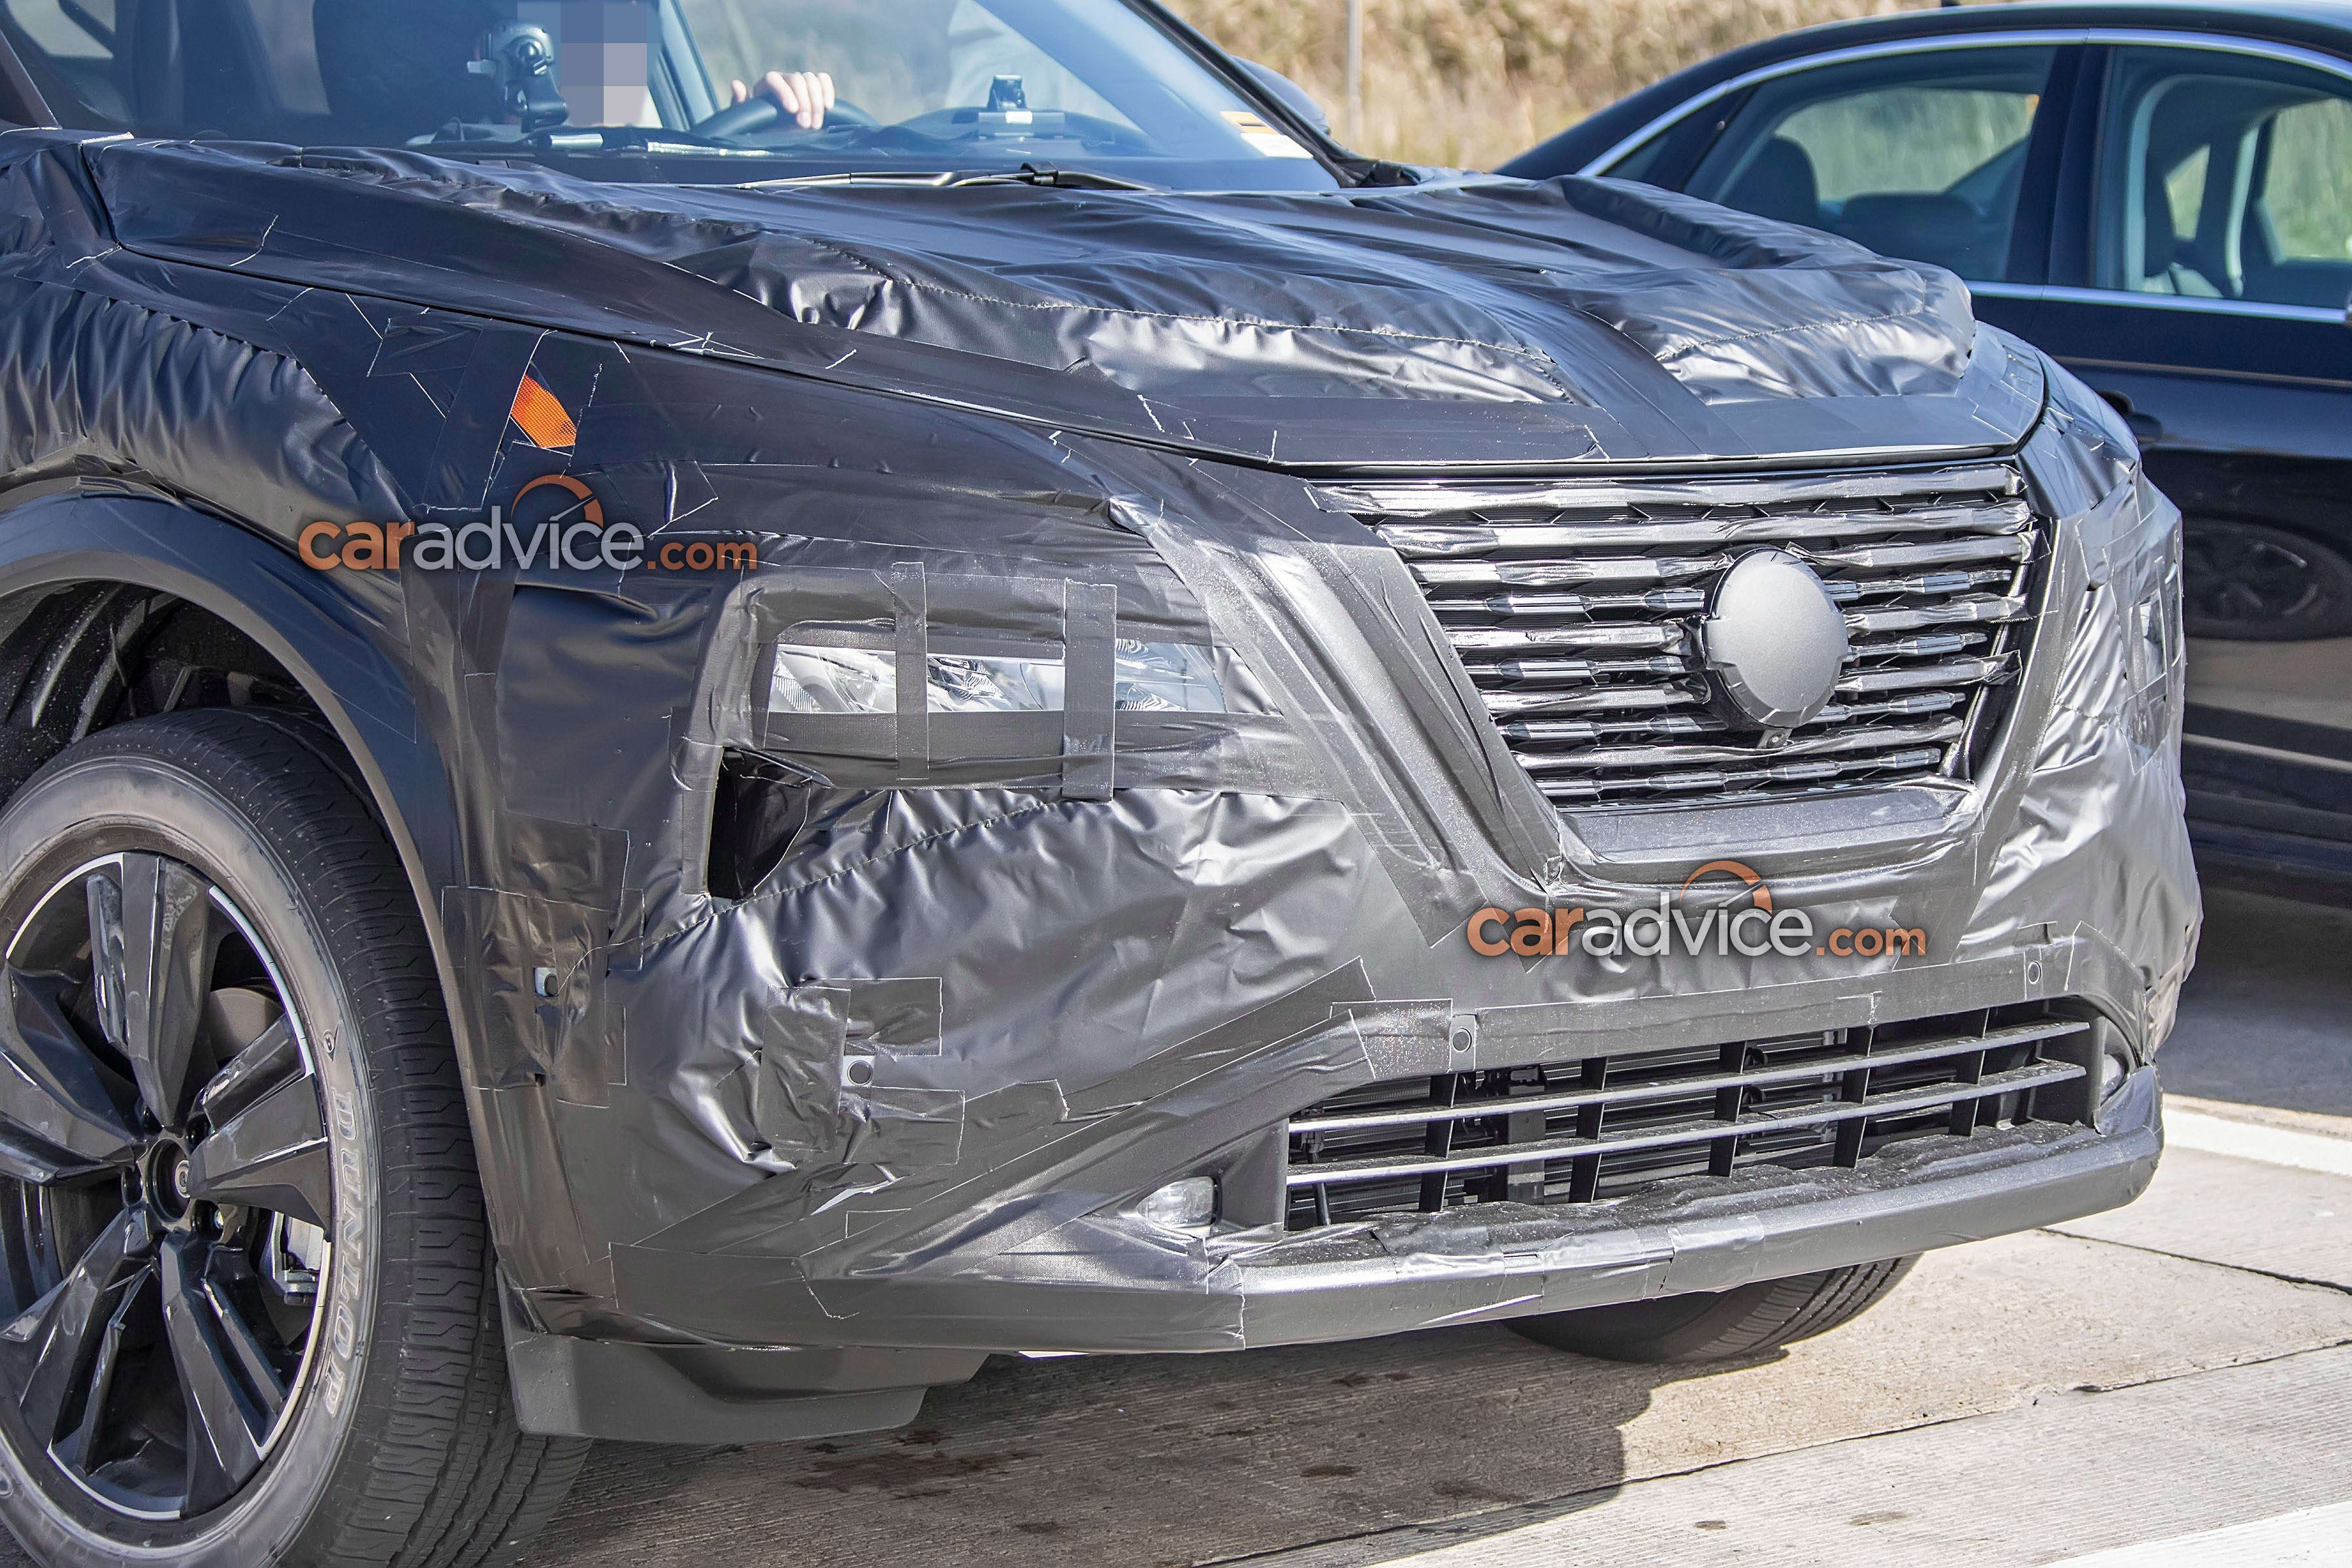 2021 Nissan X Trail Spied Inside And Out Caradvice